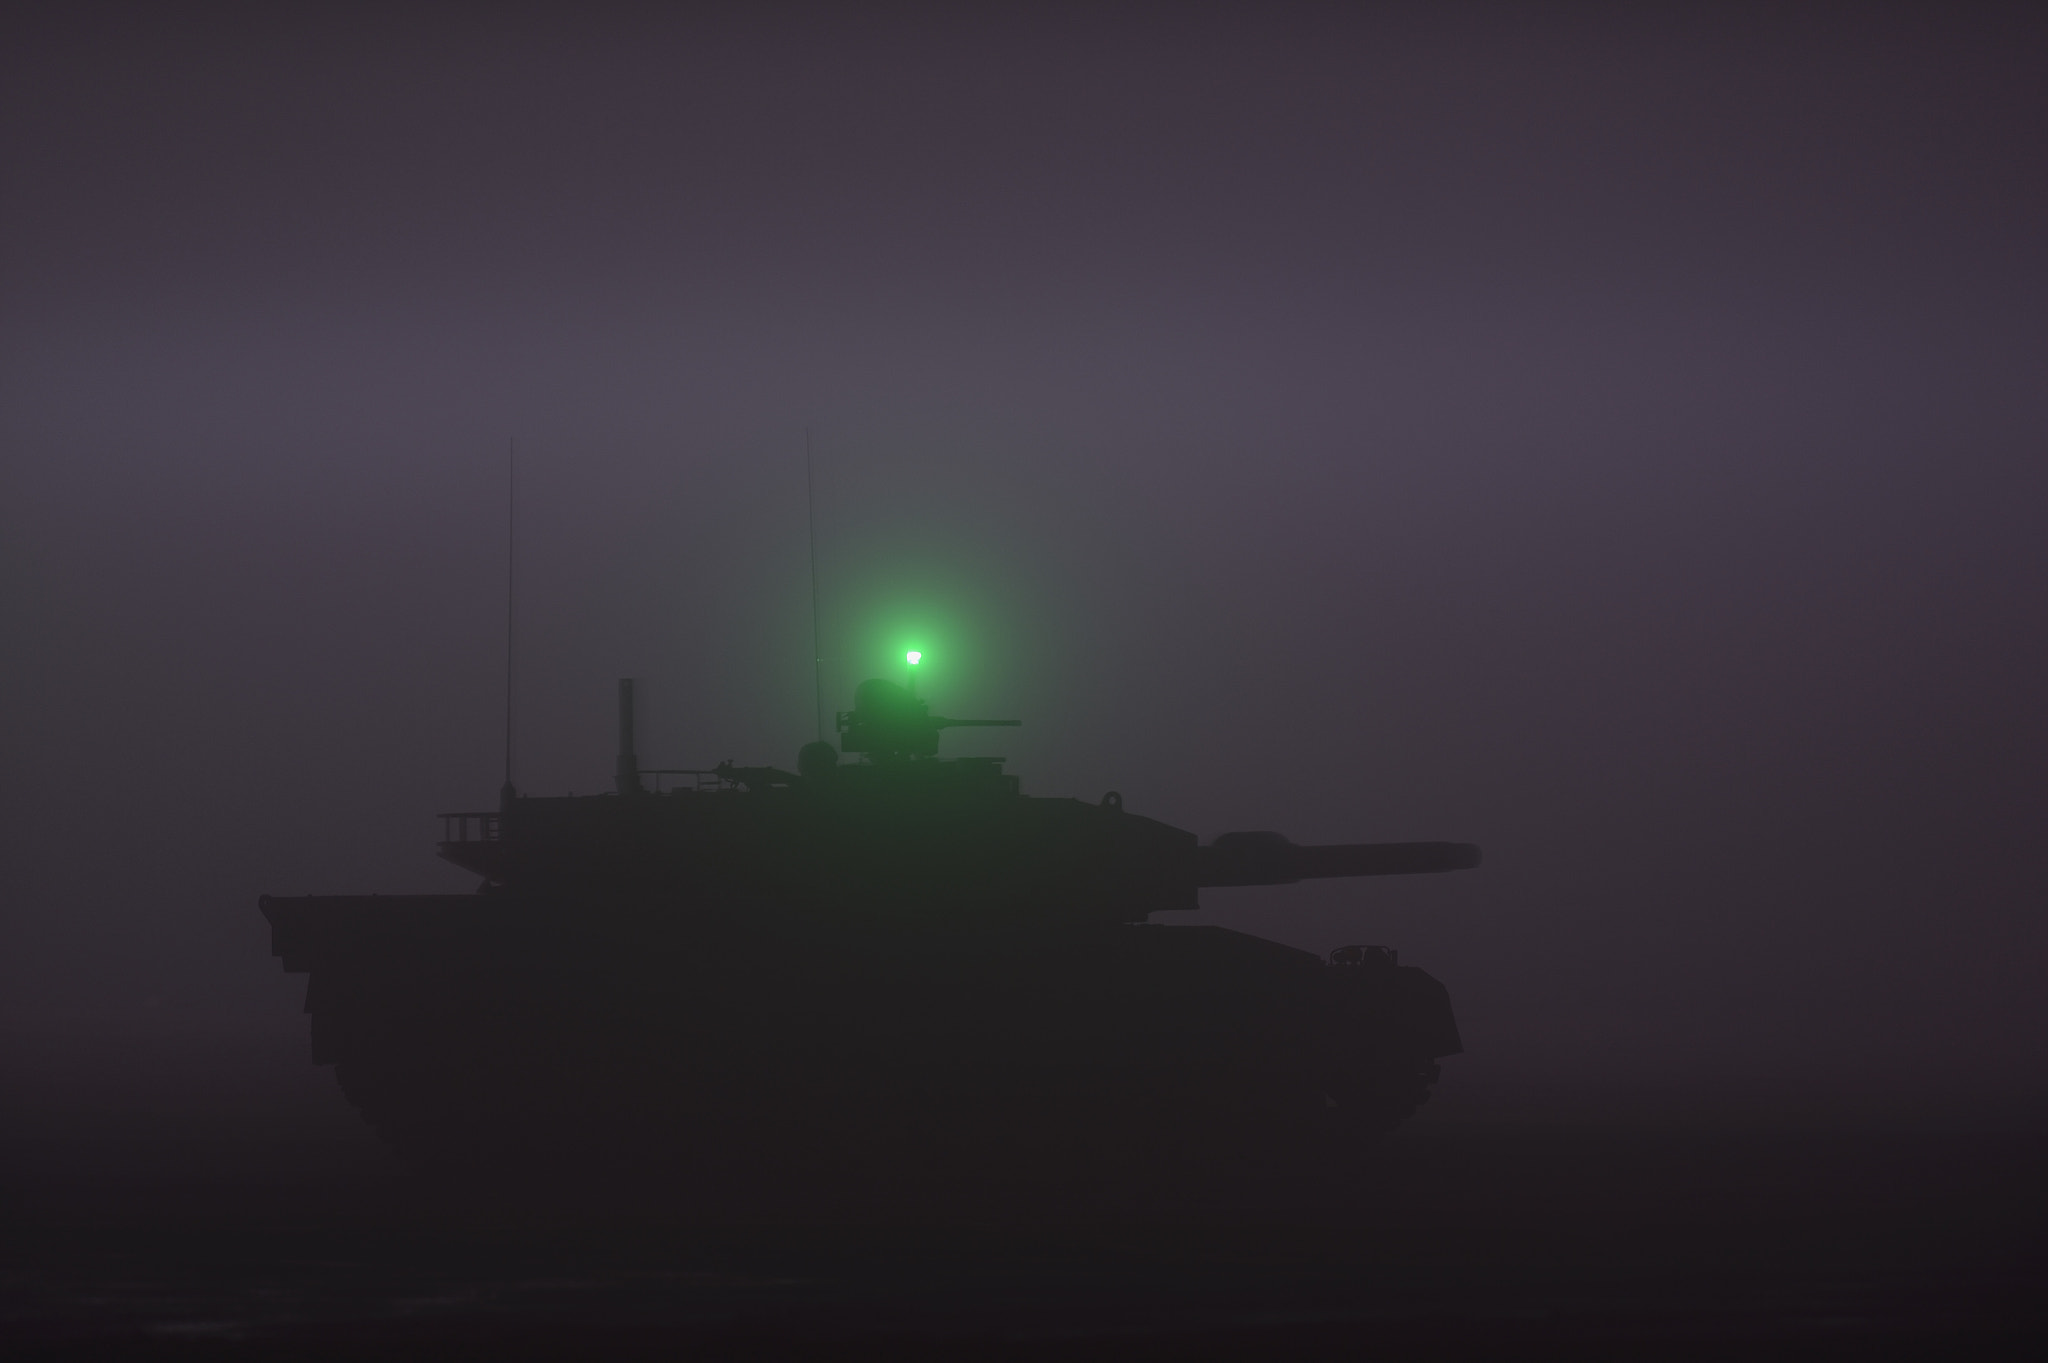 Photograph The tank wrapped in a deep fog by Keith_TT on 500px